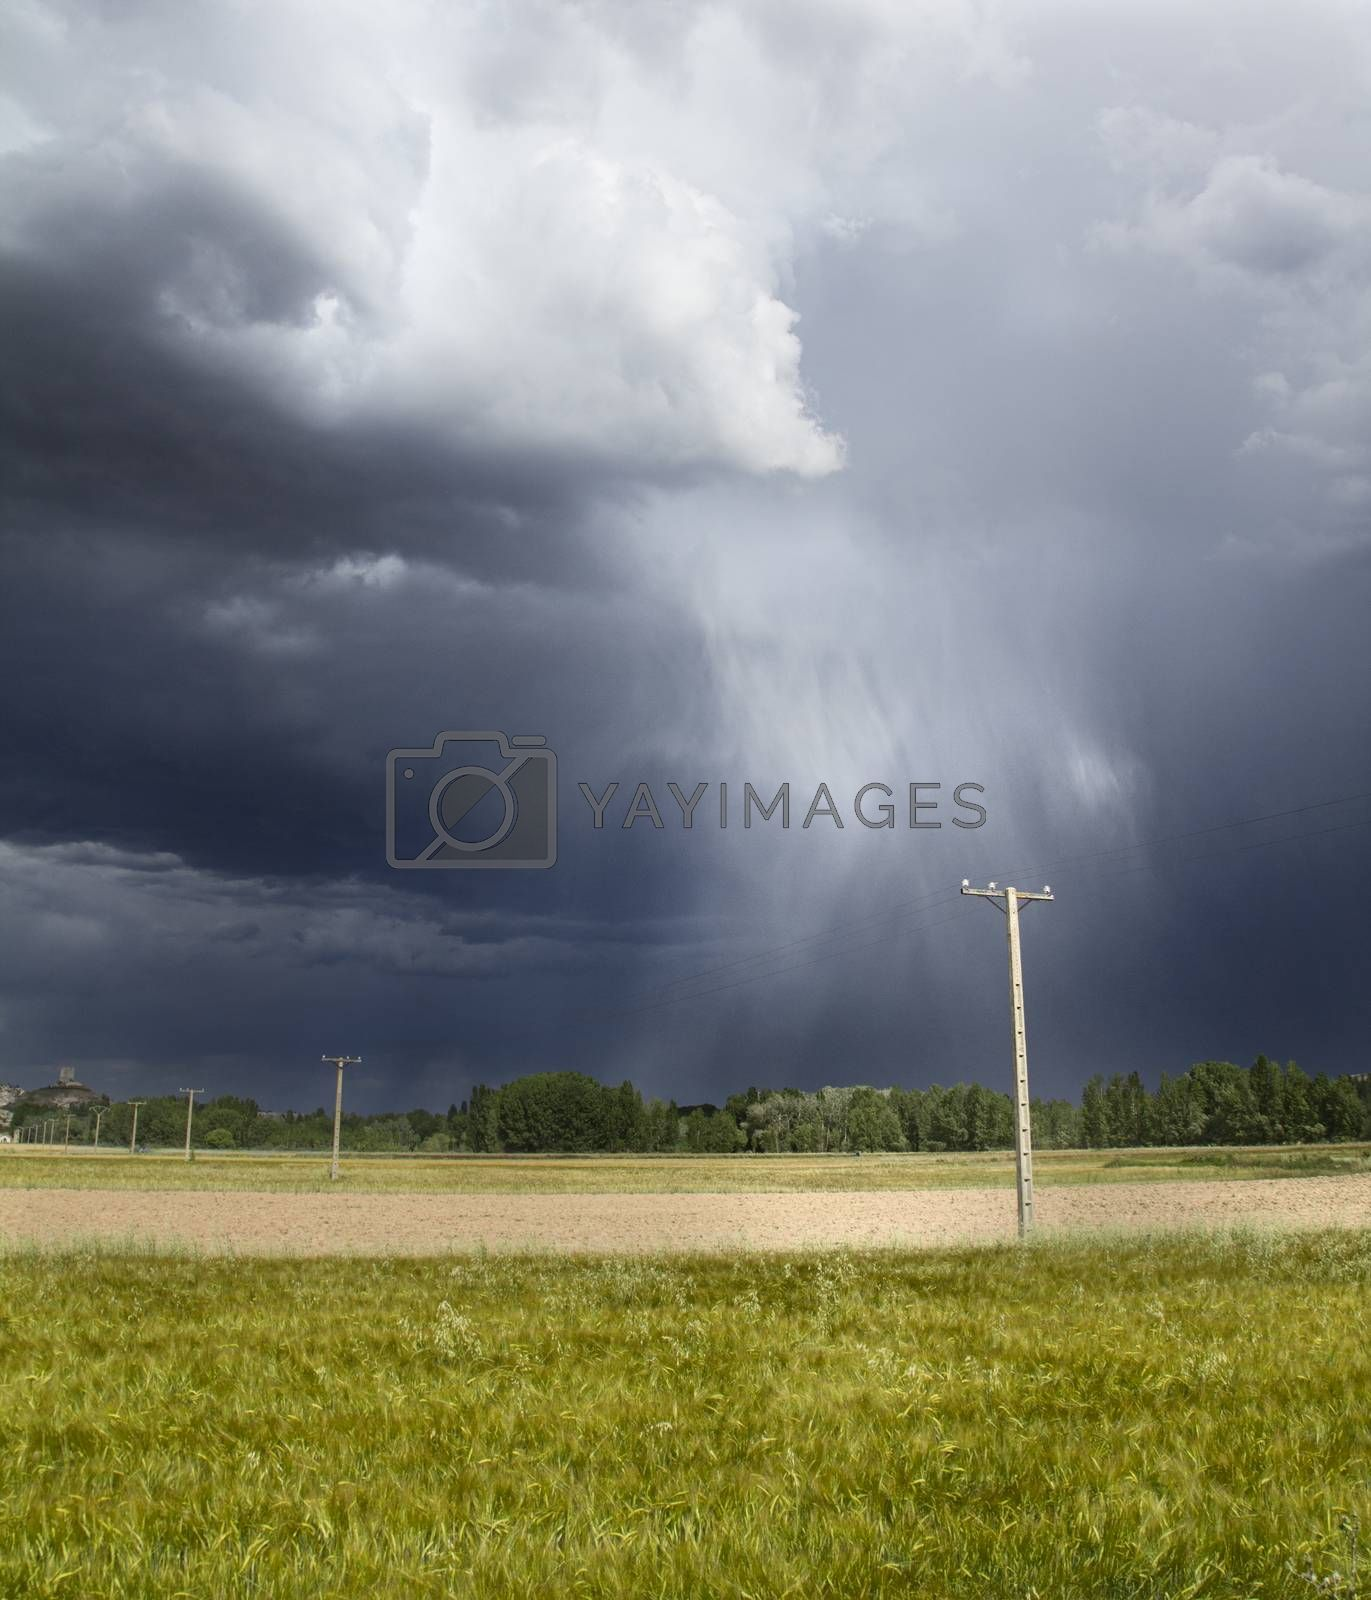 Black and cloudy sky during a storm in the green fields. The rain can be seen falling from the sky.